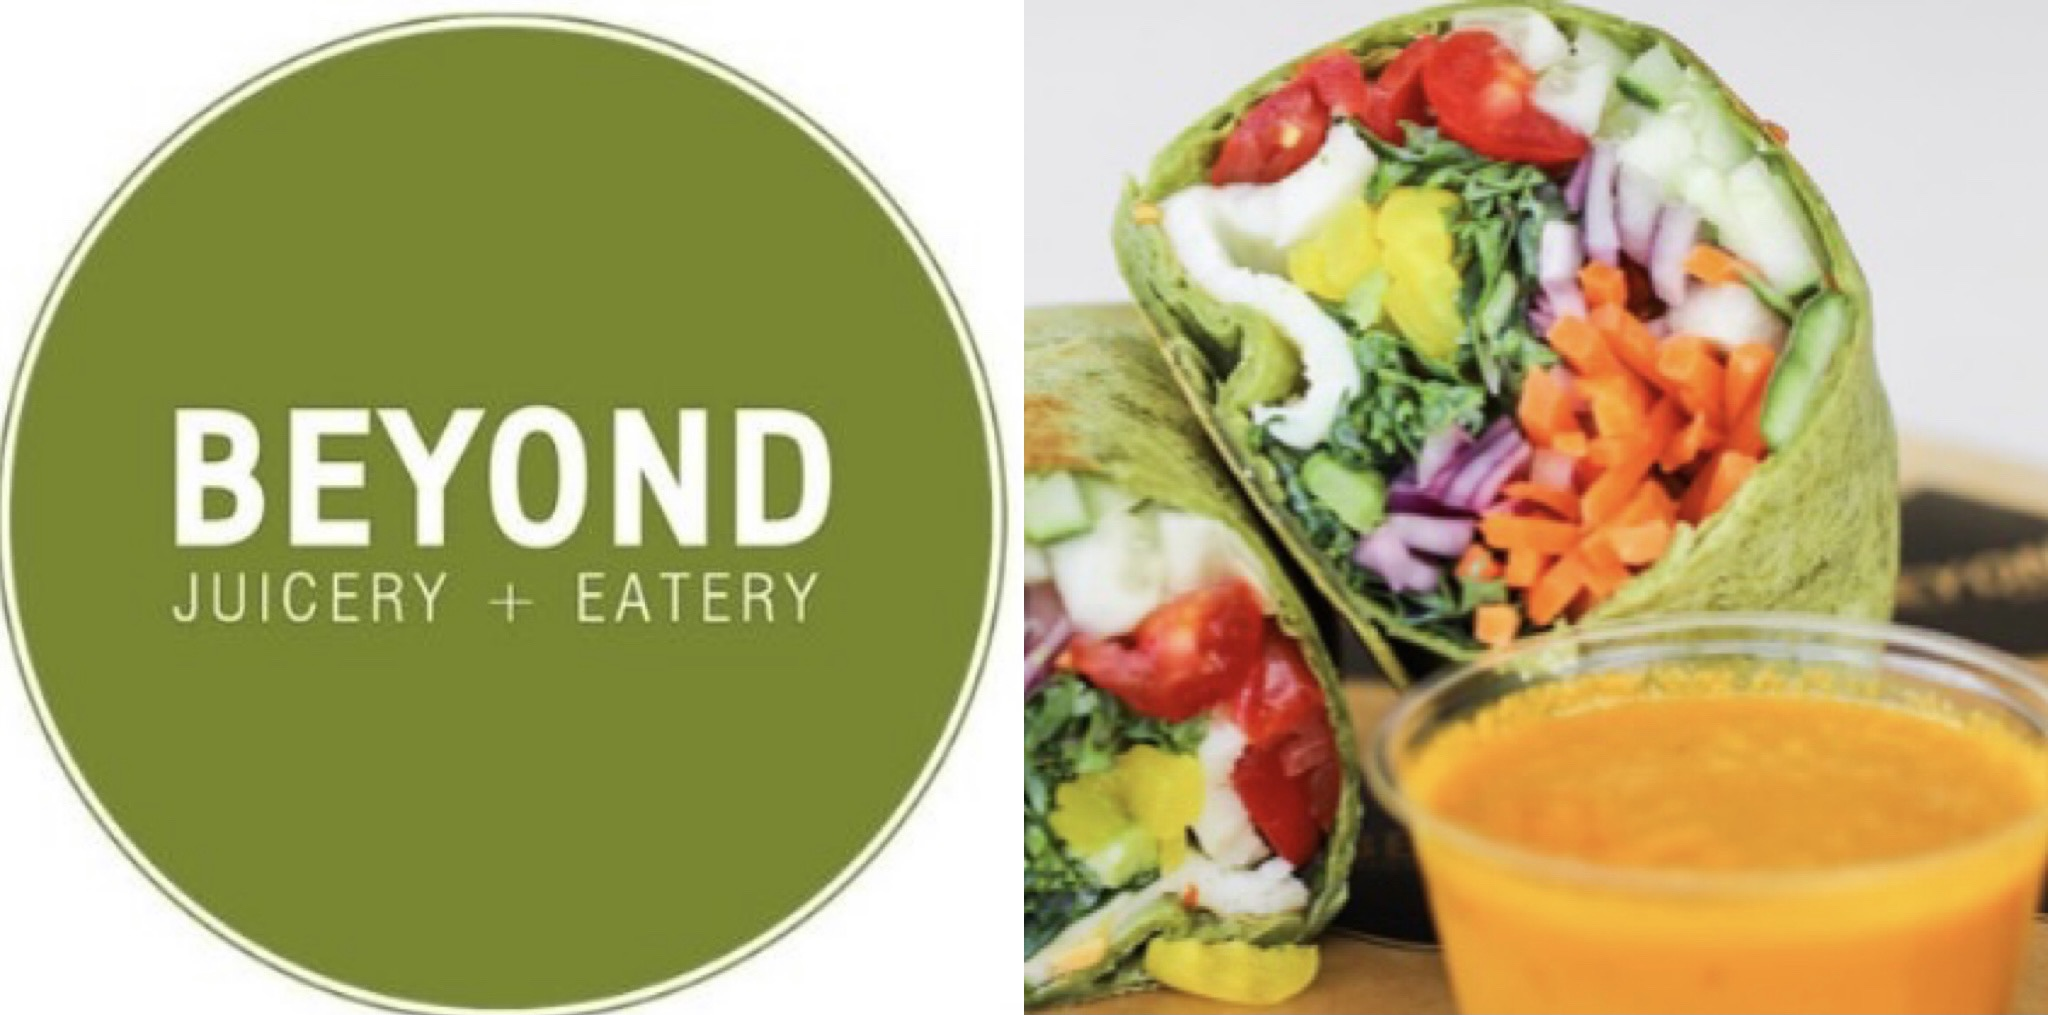 Beyond Juicery + Eatery | Best of Detroit